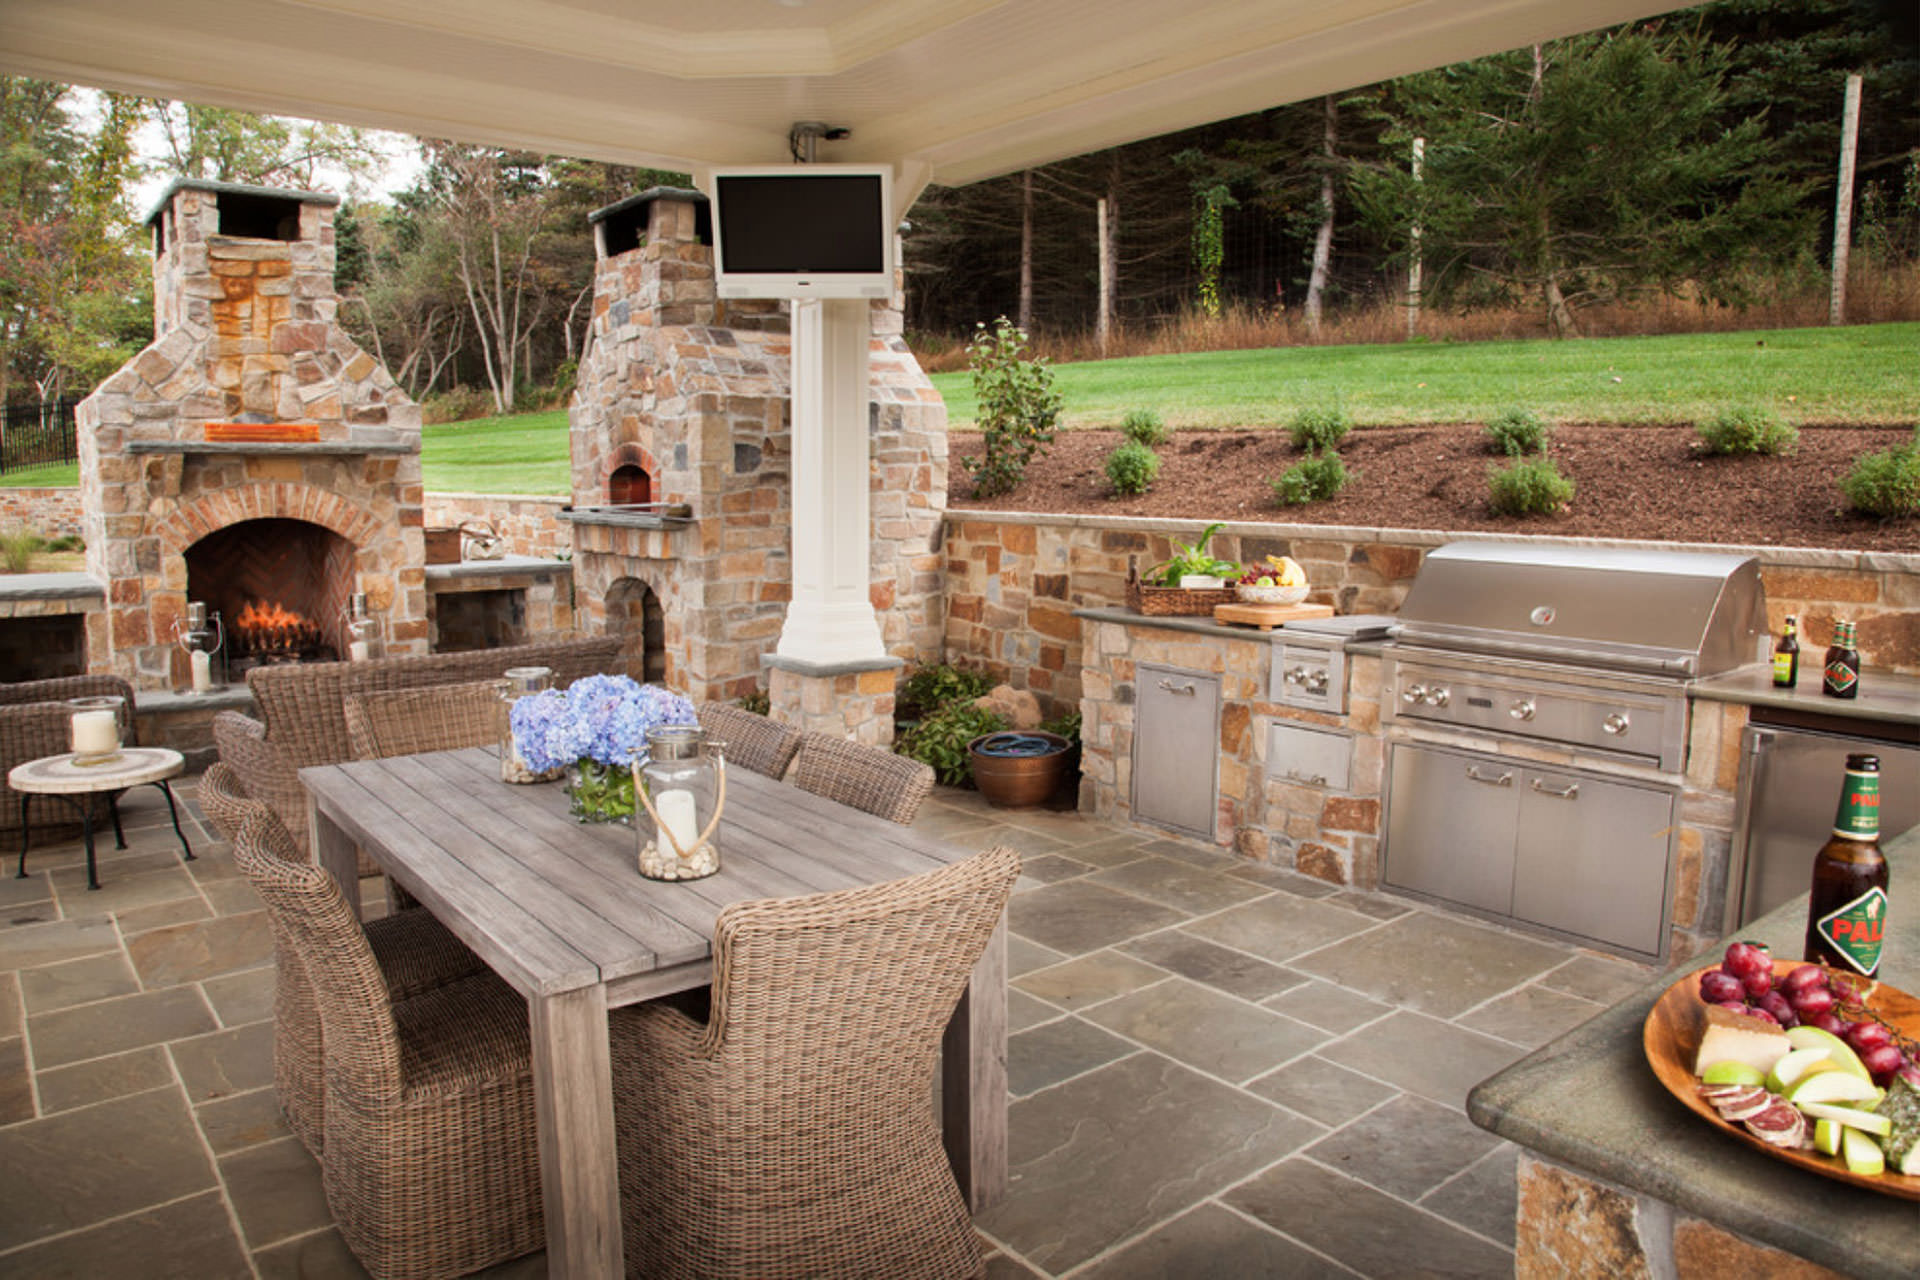 Family Kitchen Design Ideas For Cooking And Entertaining: Five Popular Design Features For Outdoor Entertaining